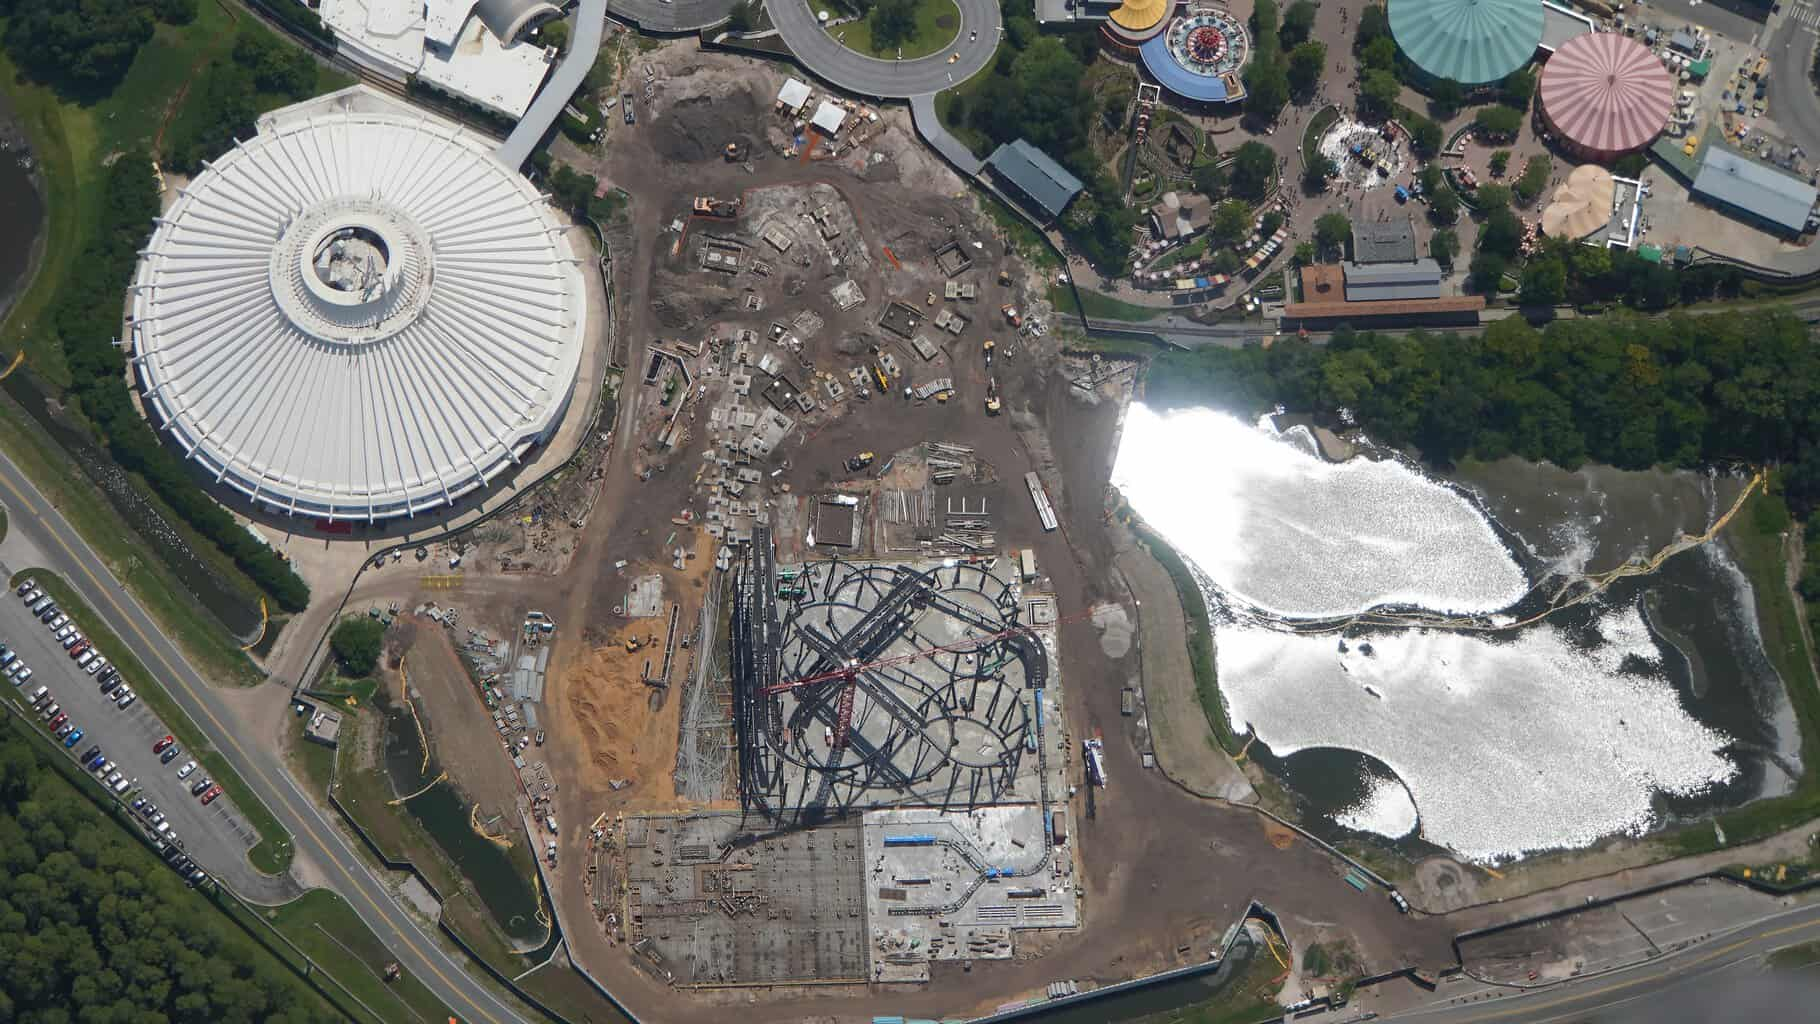 Overhead look at TRON coaster construction site magic kingdom July 2019